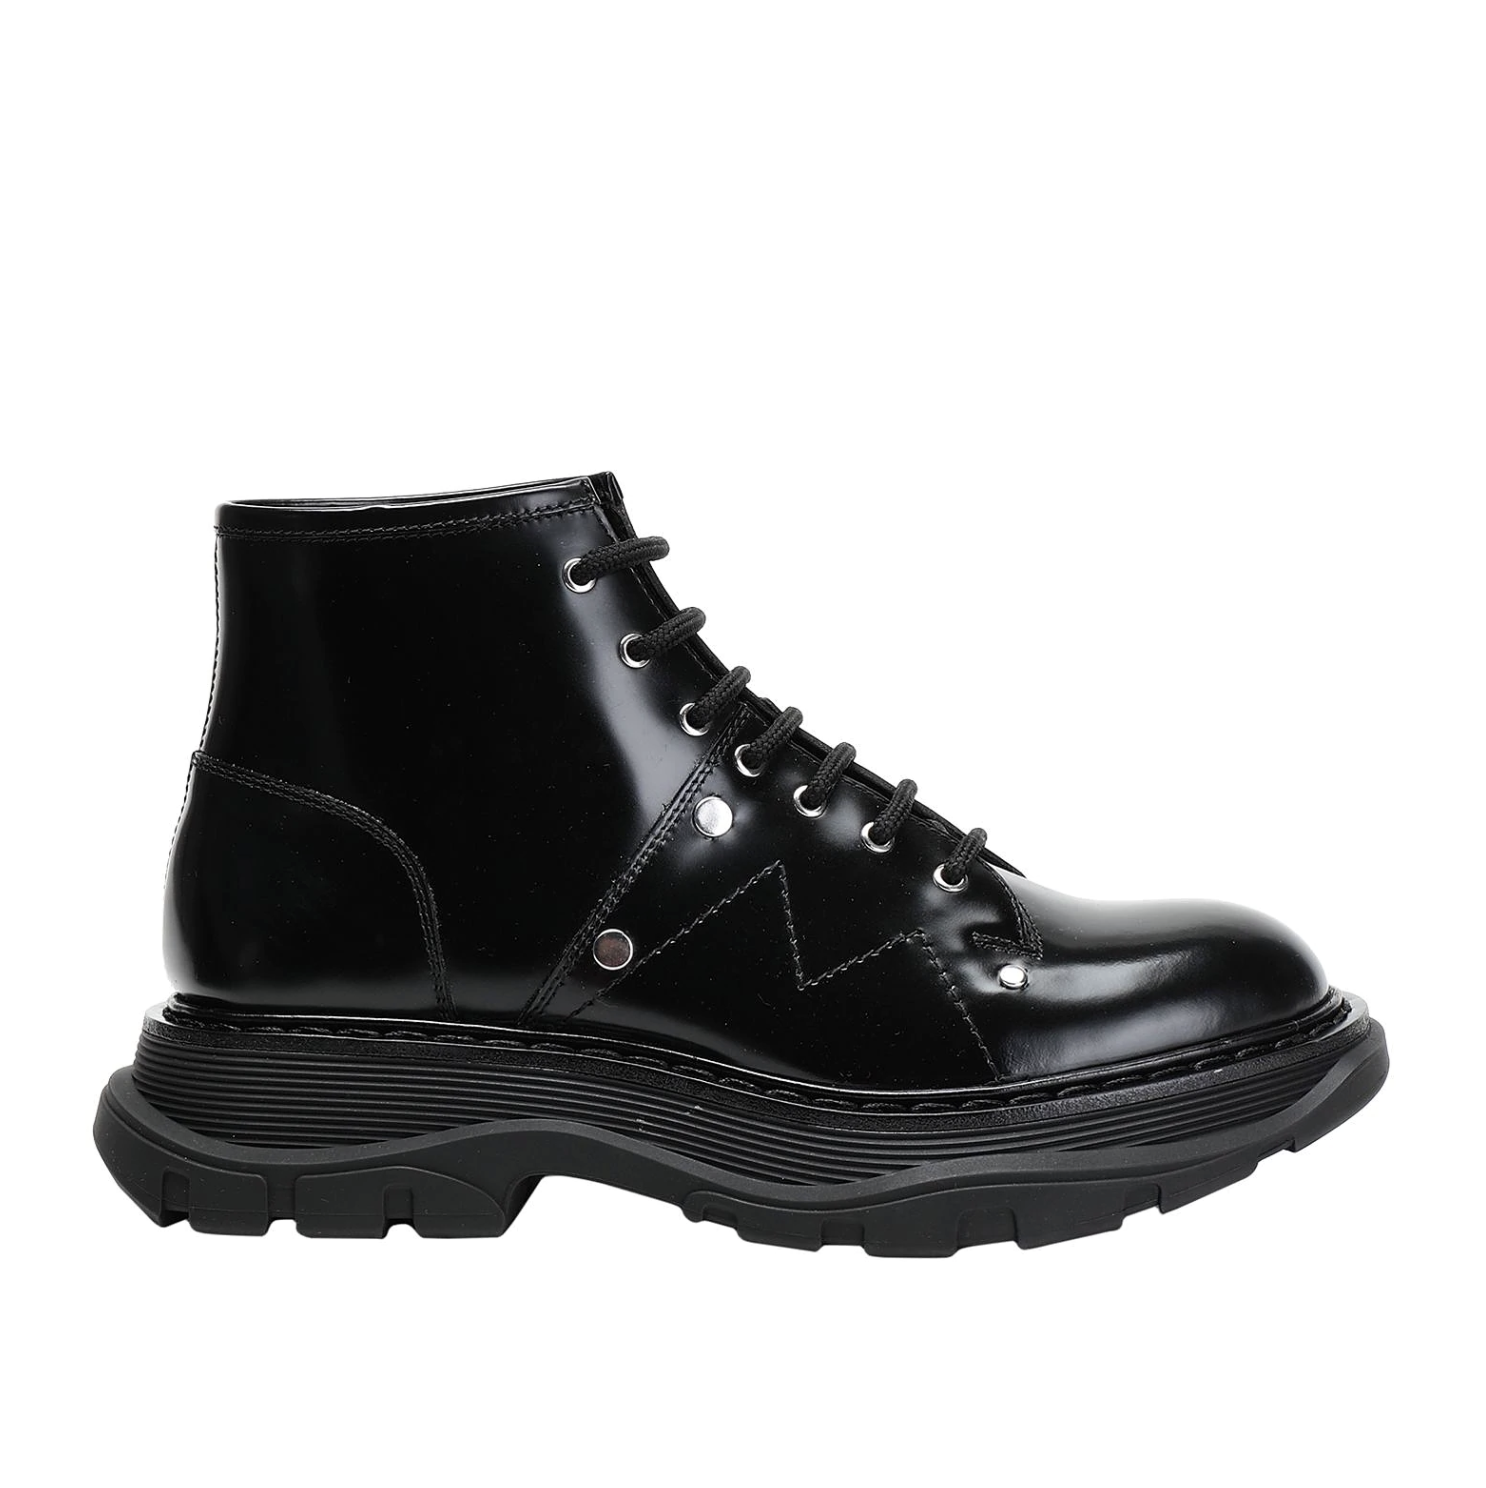 Alexander McQueen Ankle Boots 軍靴